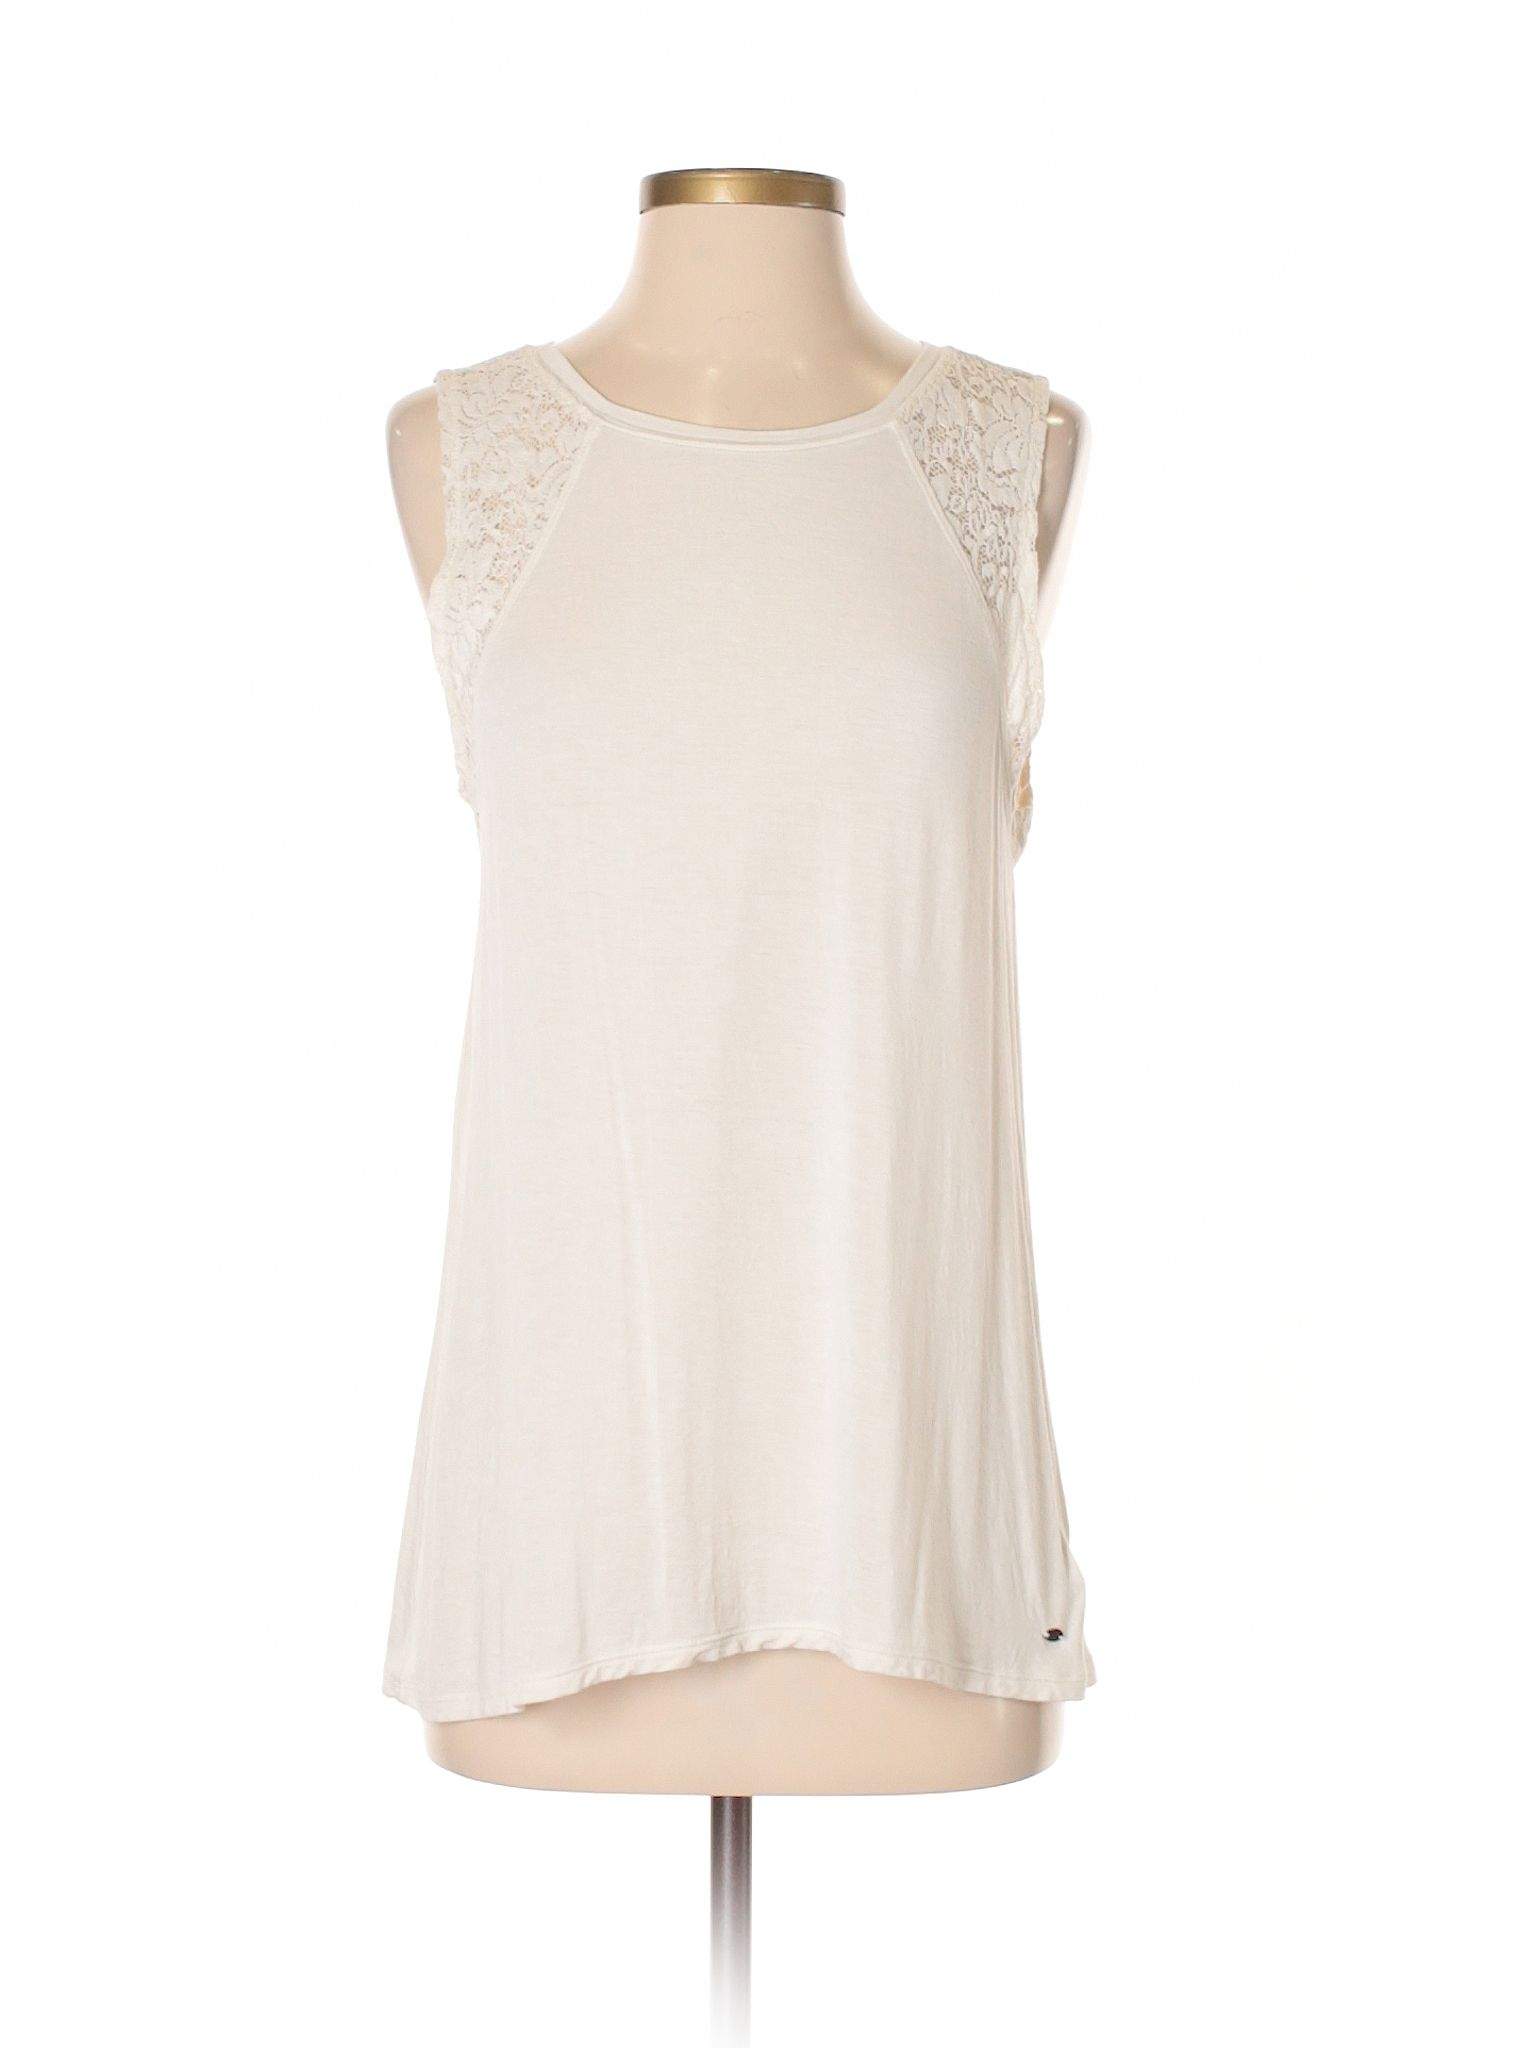 American Eagle Outfitters Sleeveless Top Size 4 00 Beige Women s